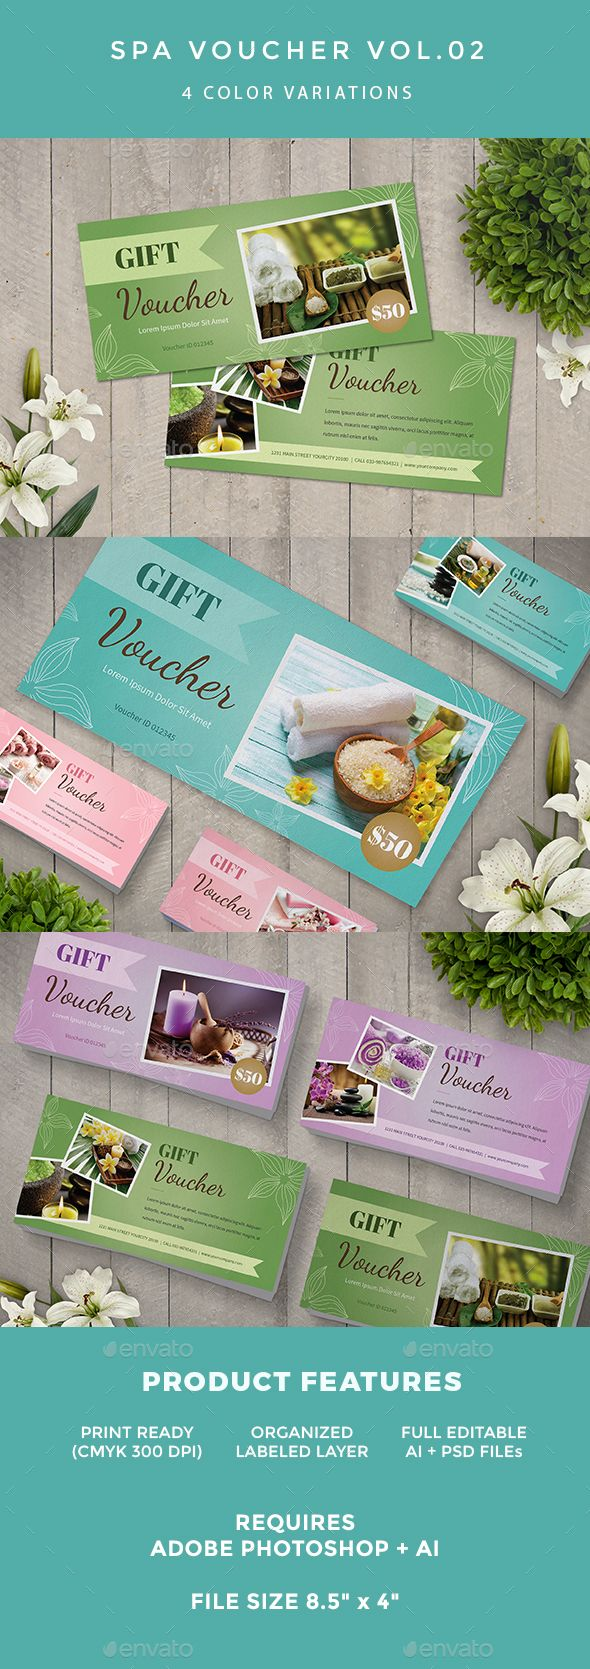 Spa Voucher by infinite78910 FeaturedAI   Psd Files 8.5鈥?20x 4鈥?20  Bleed CMYK 300 DPI Print Ready Well Organized Layer Full Editable Text Fonts Used Abril Fatfa